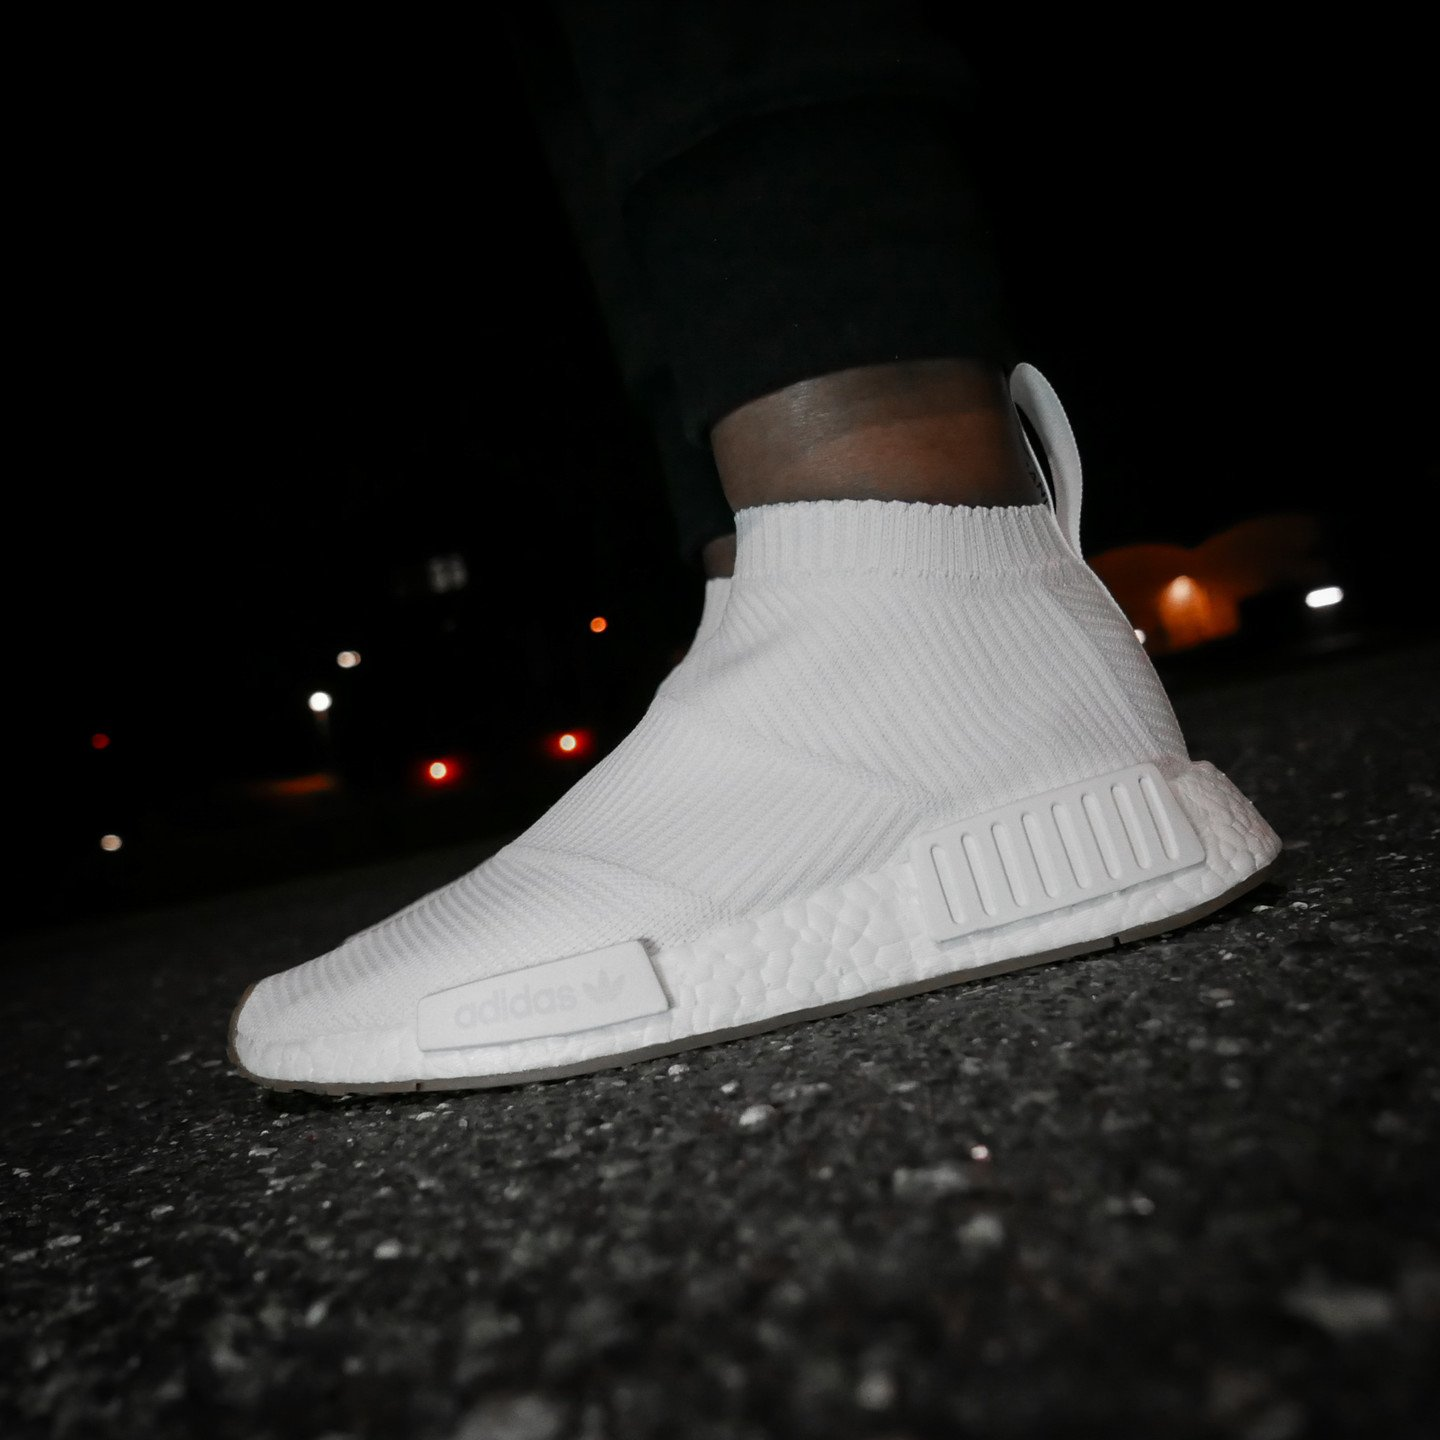 Adidas NMD CS1 City Sock Boost Primeknit Running White / Gum BA7208-46.66